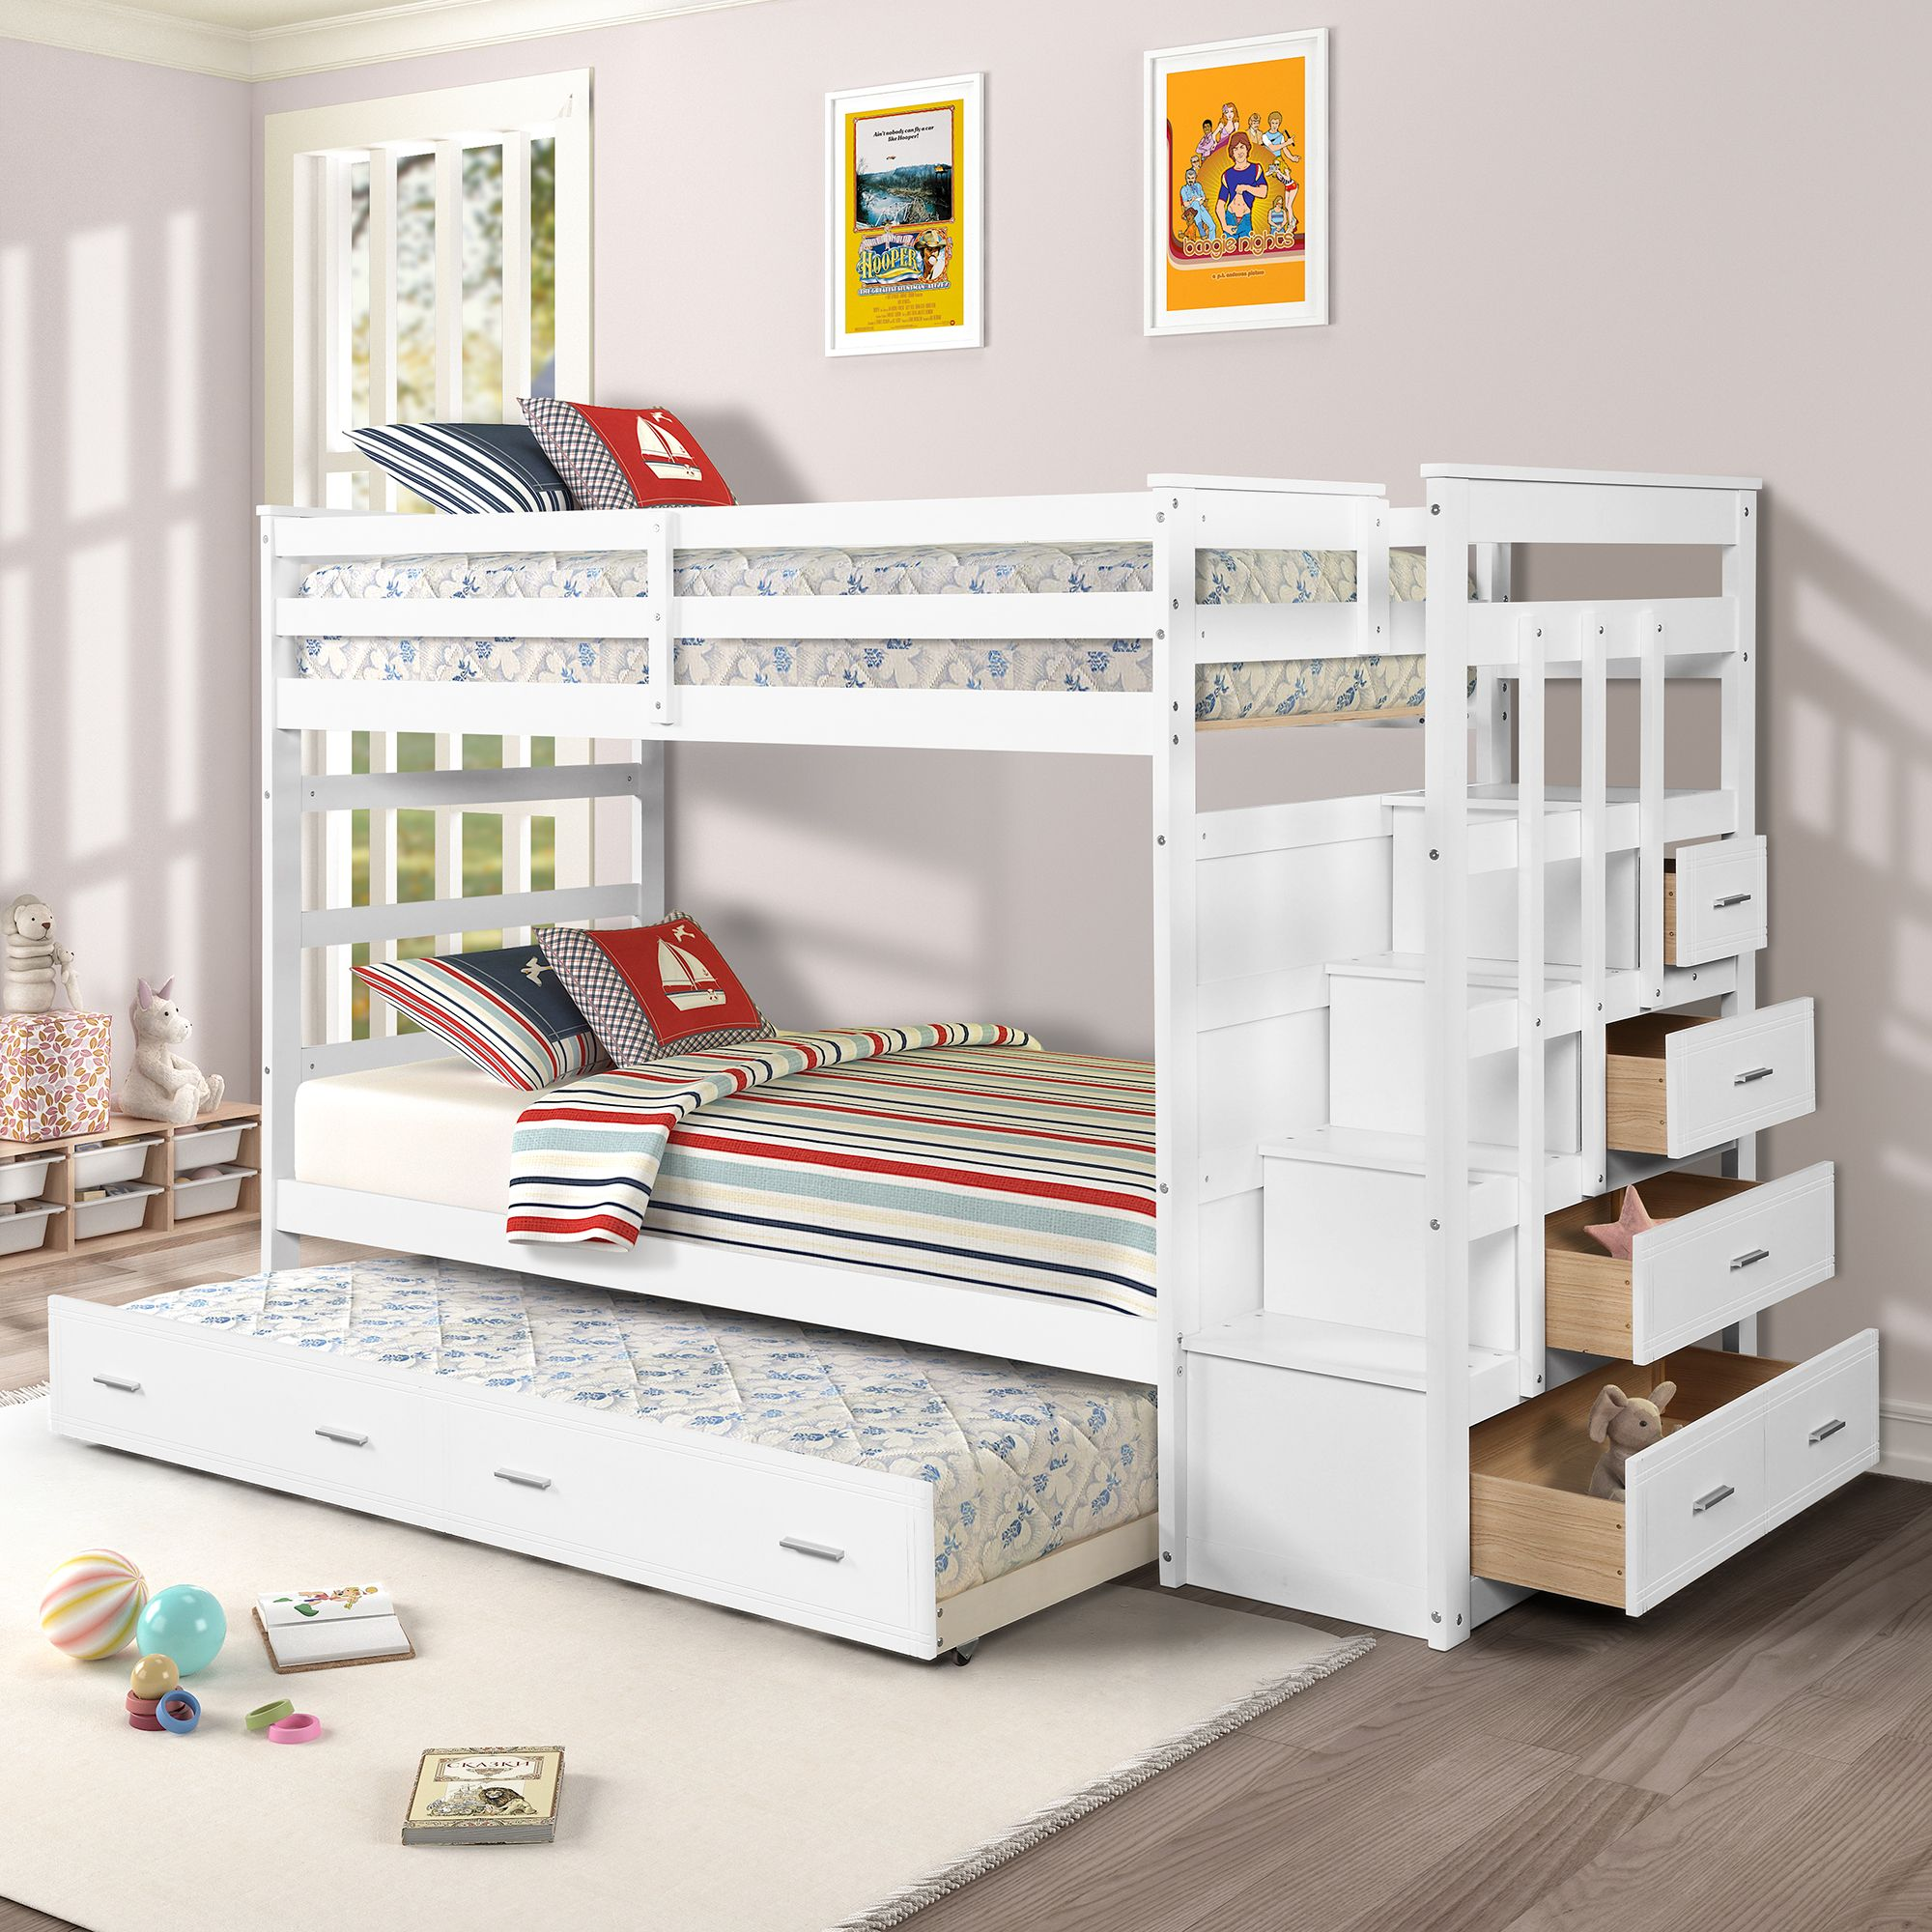 Free 2 Day Shipping Buy Harper Bright Designs Twin Over Twin Wood Bunk Bed With Trundle Storage Drawers Mult Bunk Bed With Trundle Wood Bunk Beds Bunk Beds Cheap twin over twin bunk beds